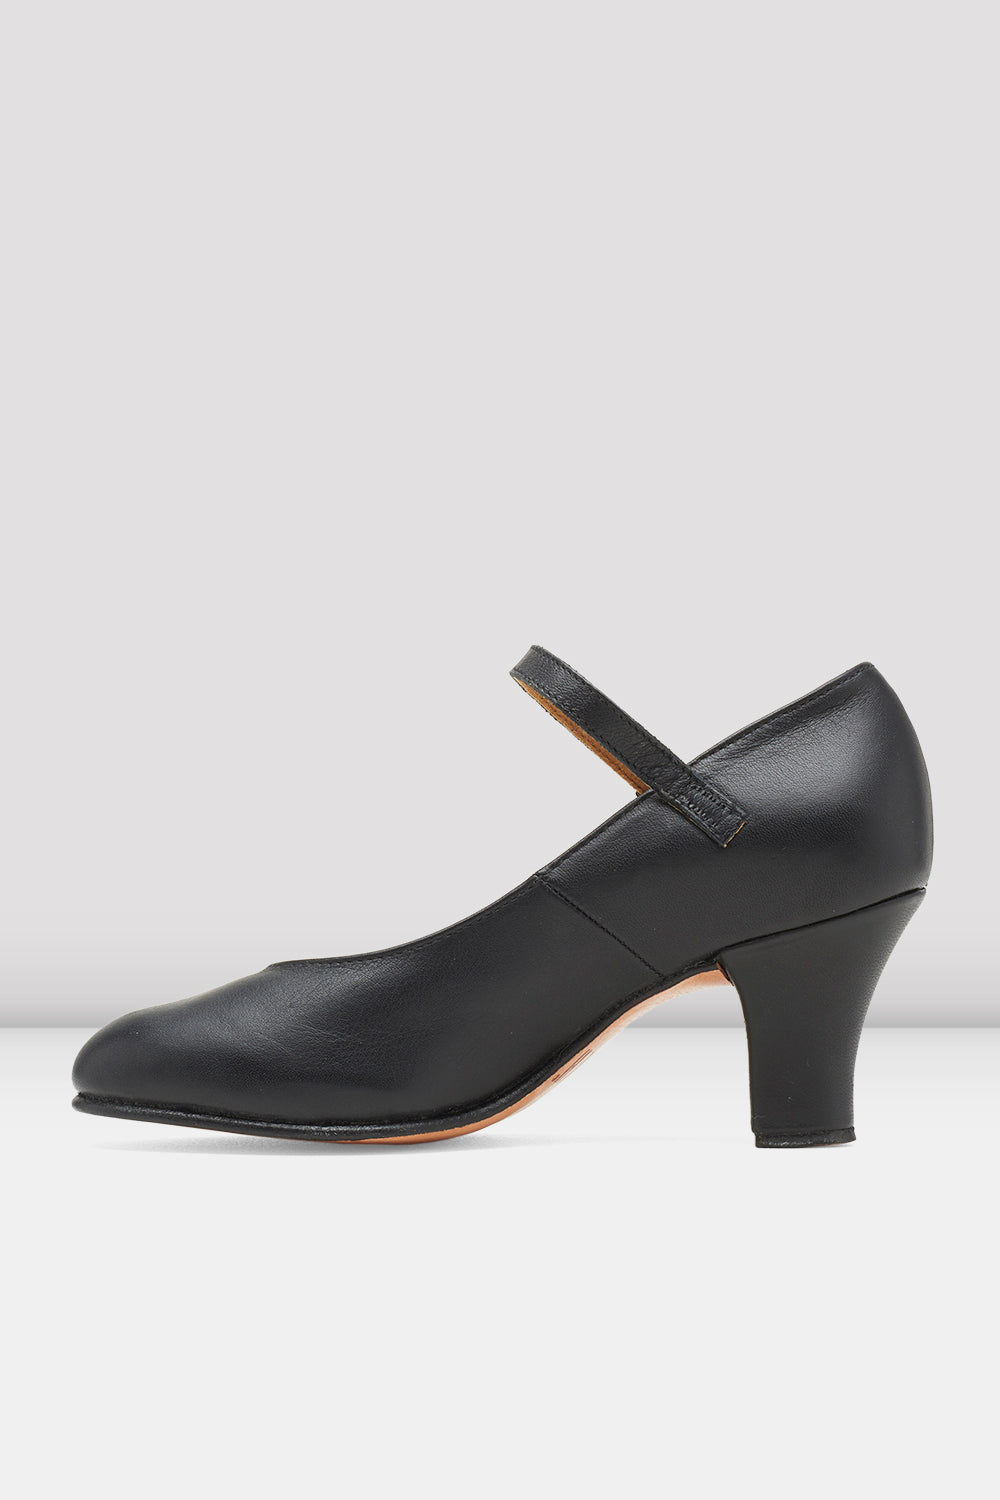 Black freed LBAR2 character shoes  size 3